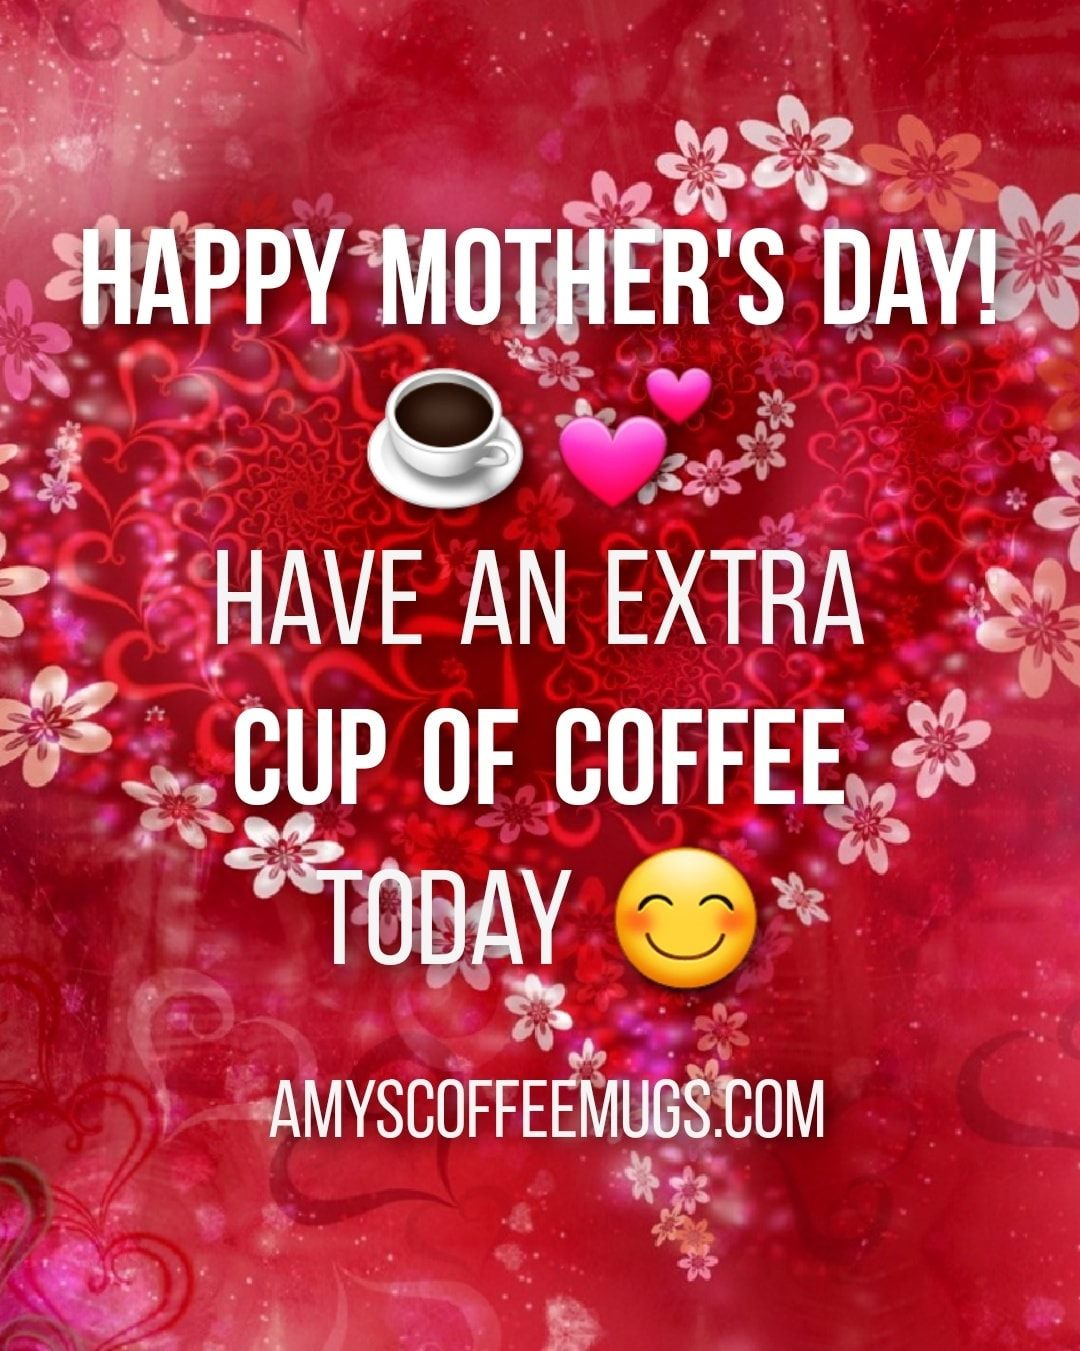 Happy Mother's Day - have an extra cup of coffee today - Amy's Coffee Mugs